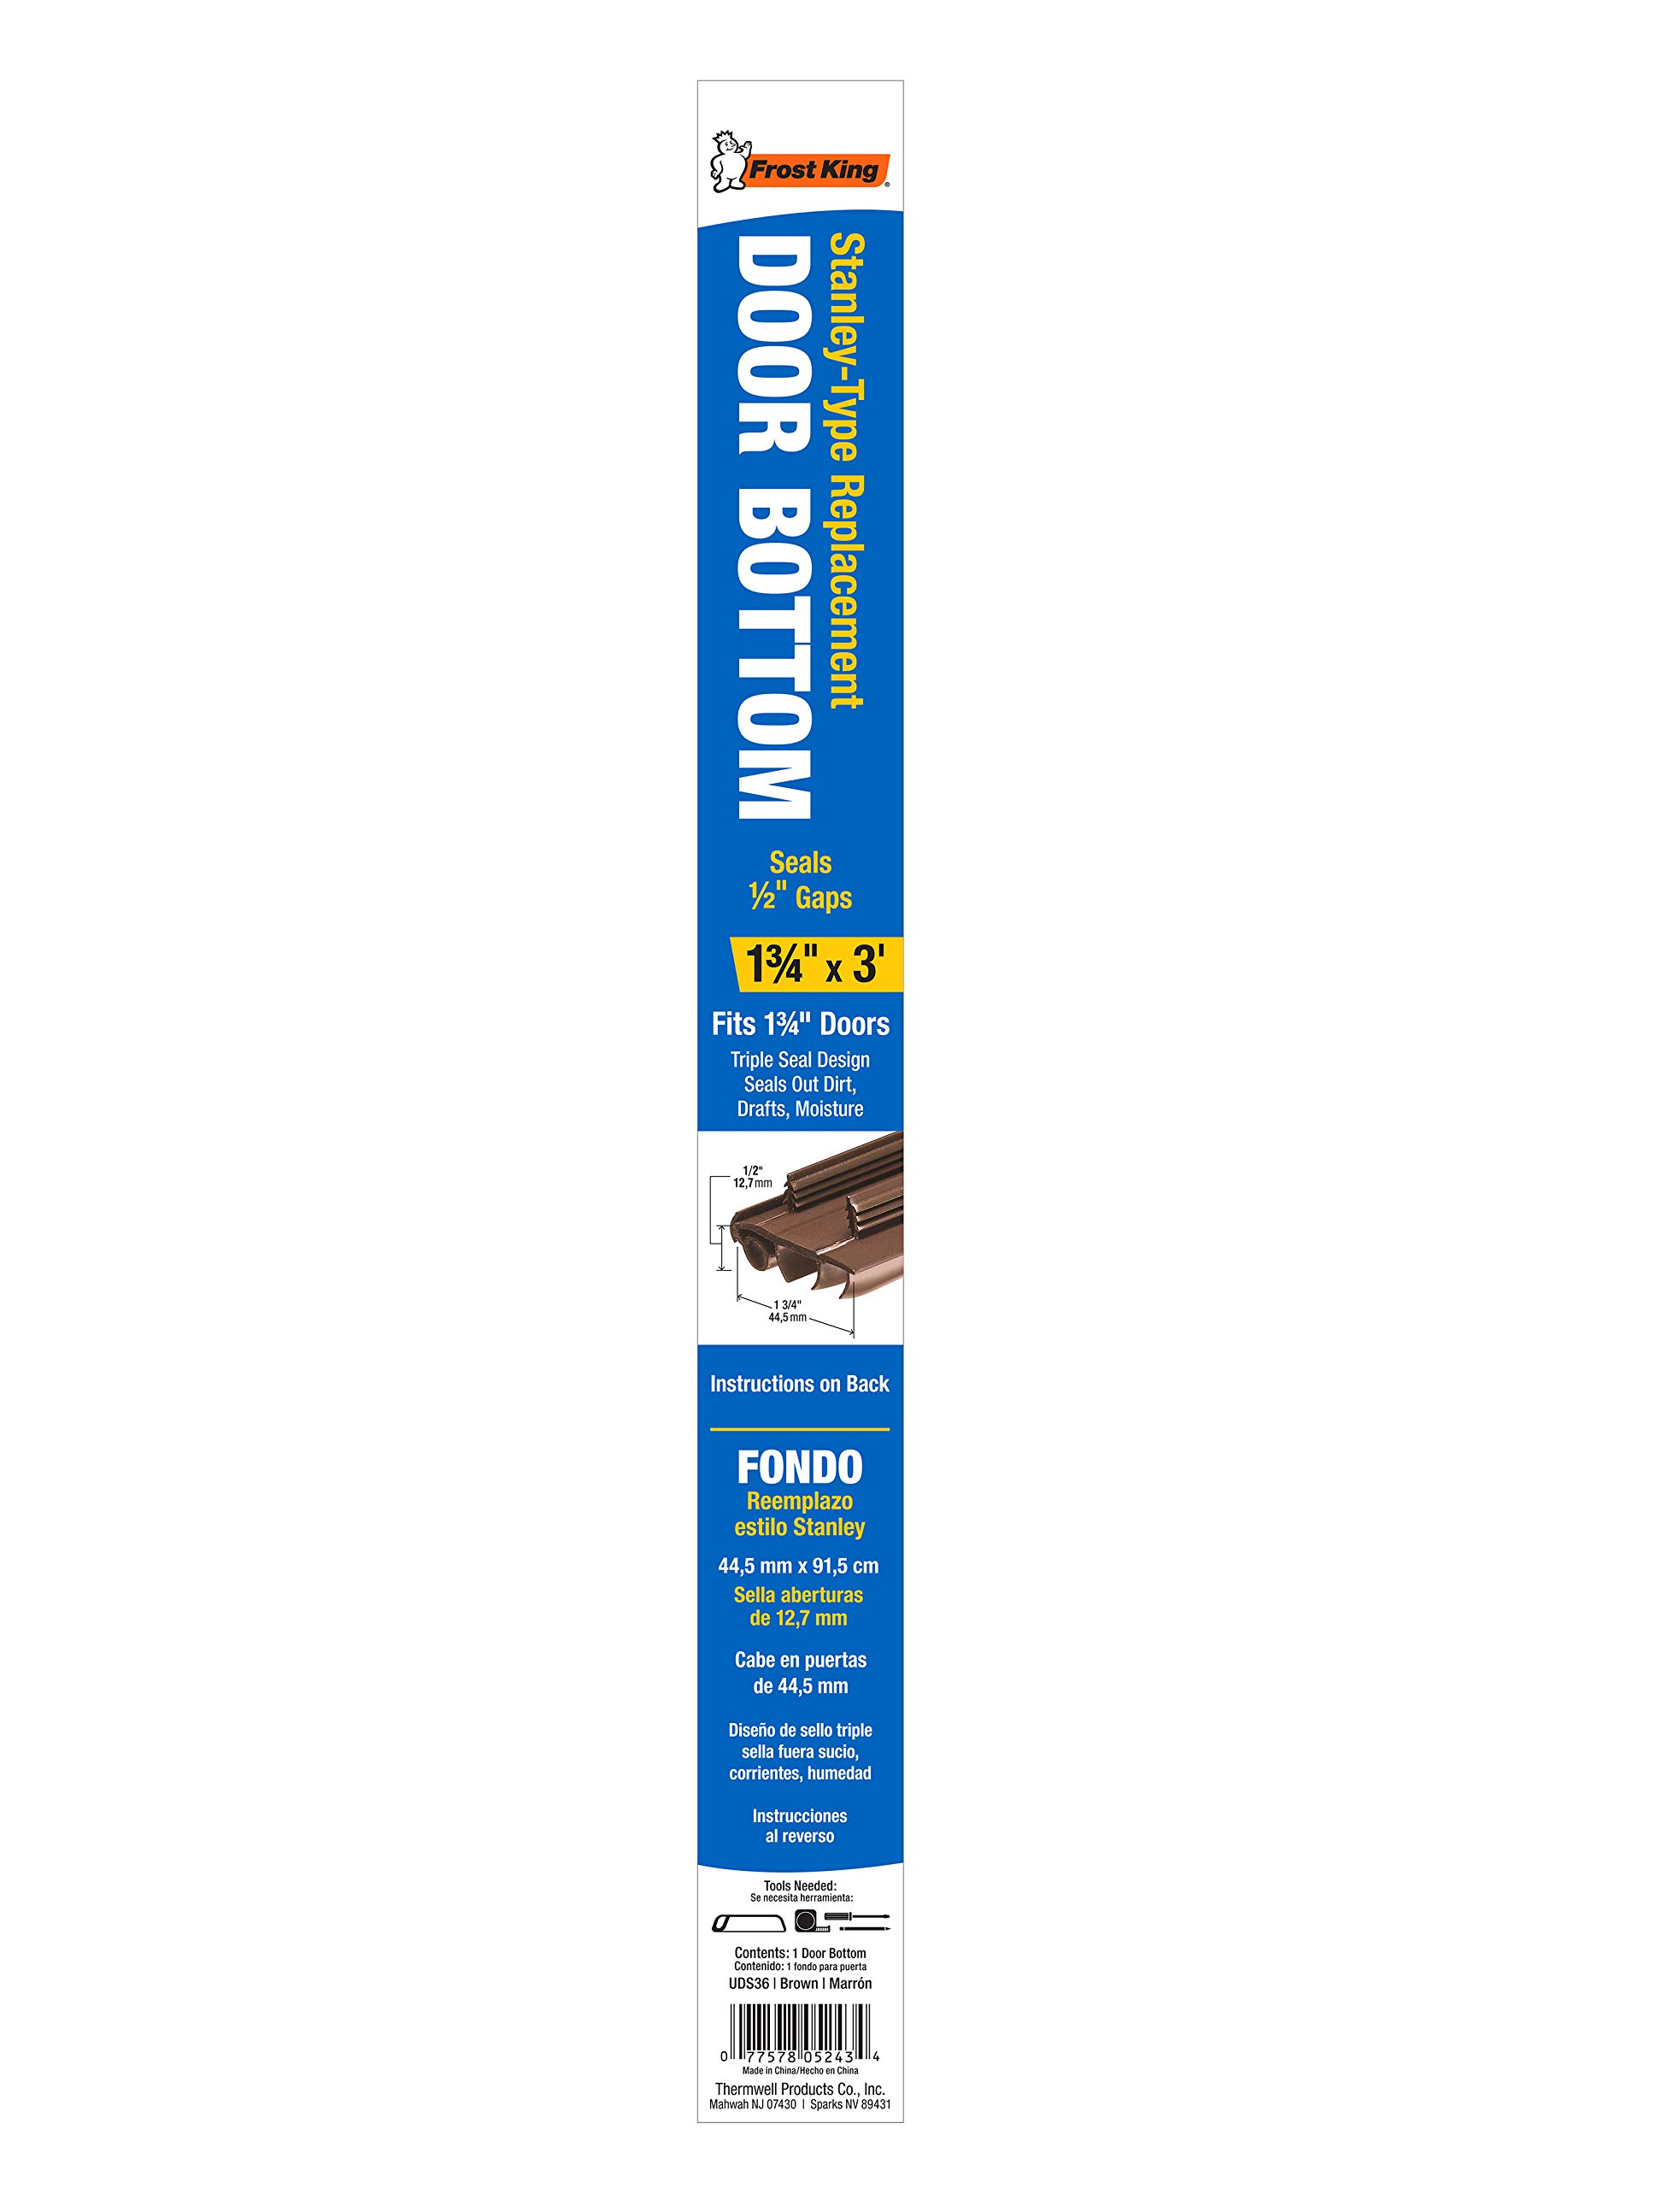 Frost King UDS36 Door Bottom, 36 in L X 1-3/4 in W, Thermoplastic 1-3/4'' x 36'' Brown by Frost King (Image #2)